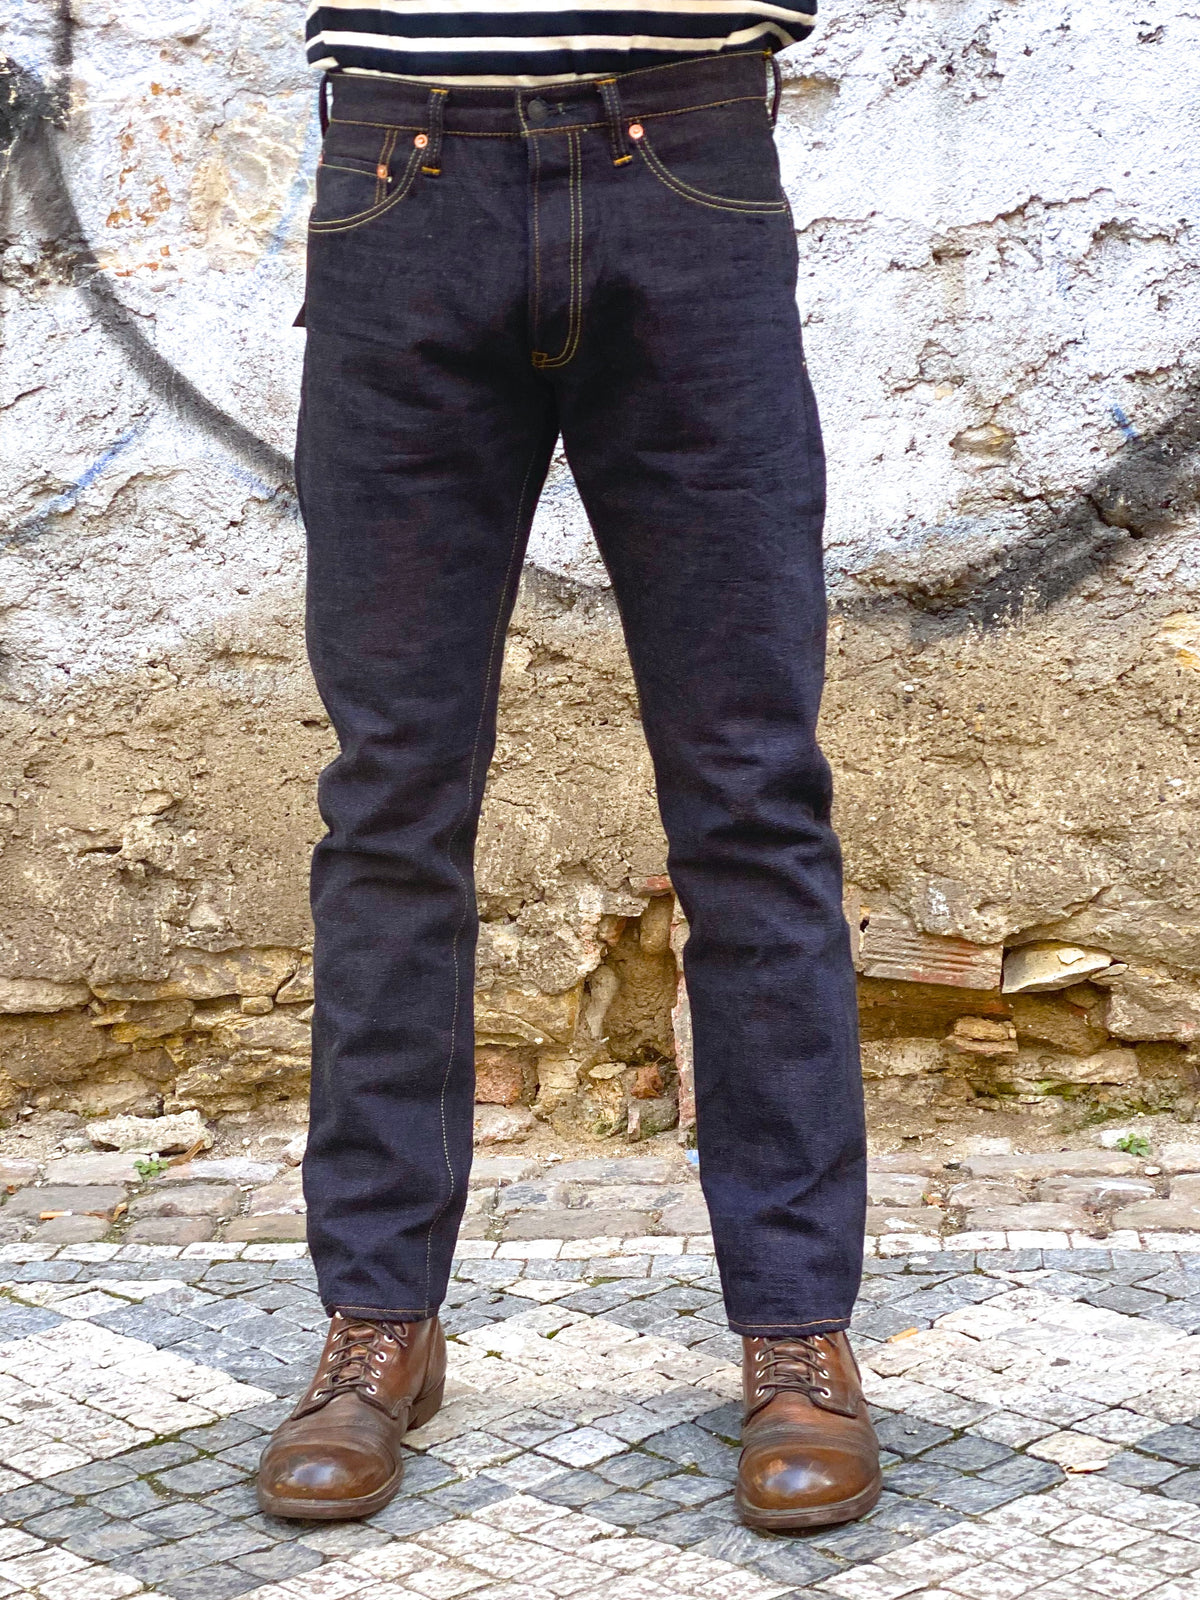 Studio d'Artisan SP-067 Marron 40th Anniversary Jeans